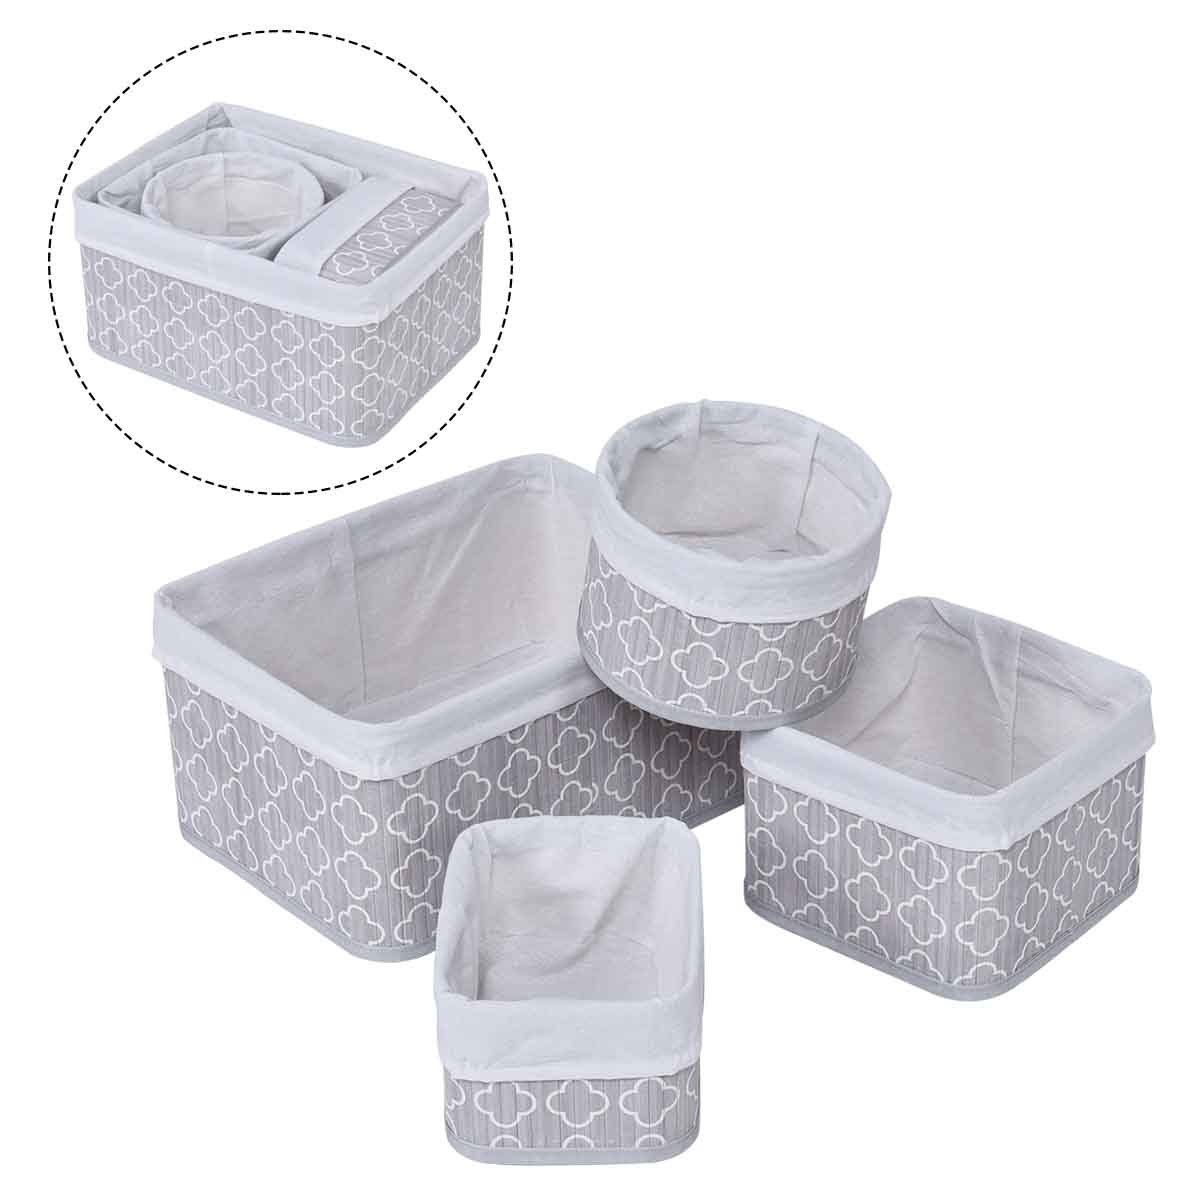 Gymax 4 Set Fabric Lined Bamboo Baskets Storage Laundry Bin Organizers Flower Pattern